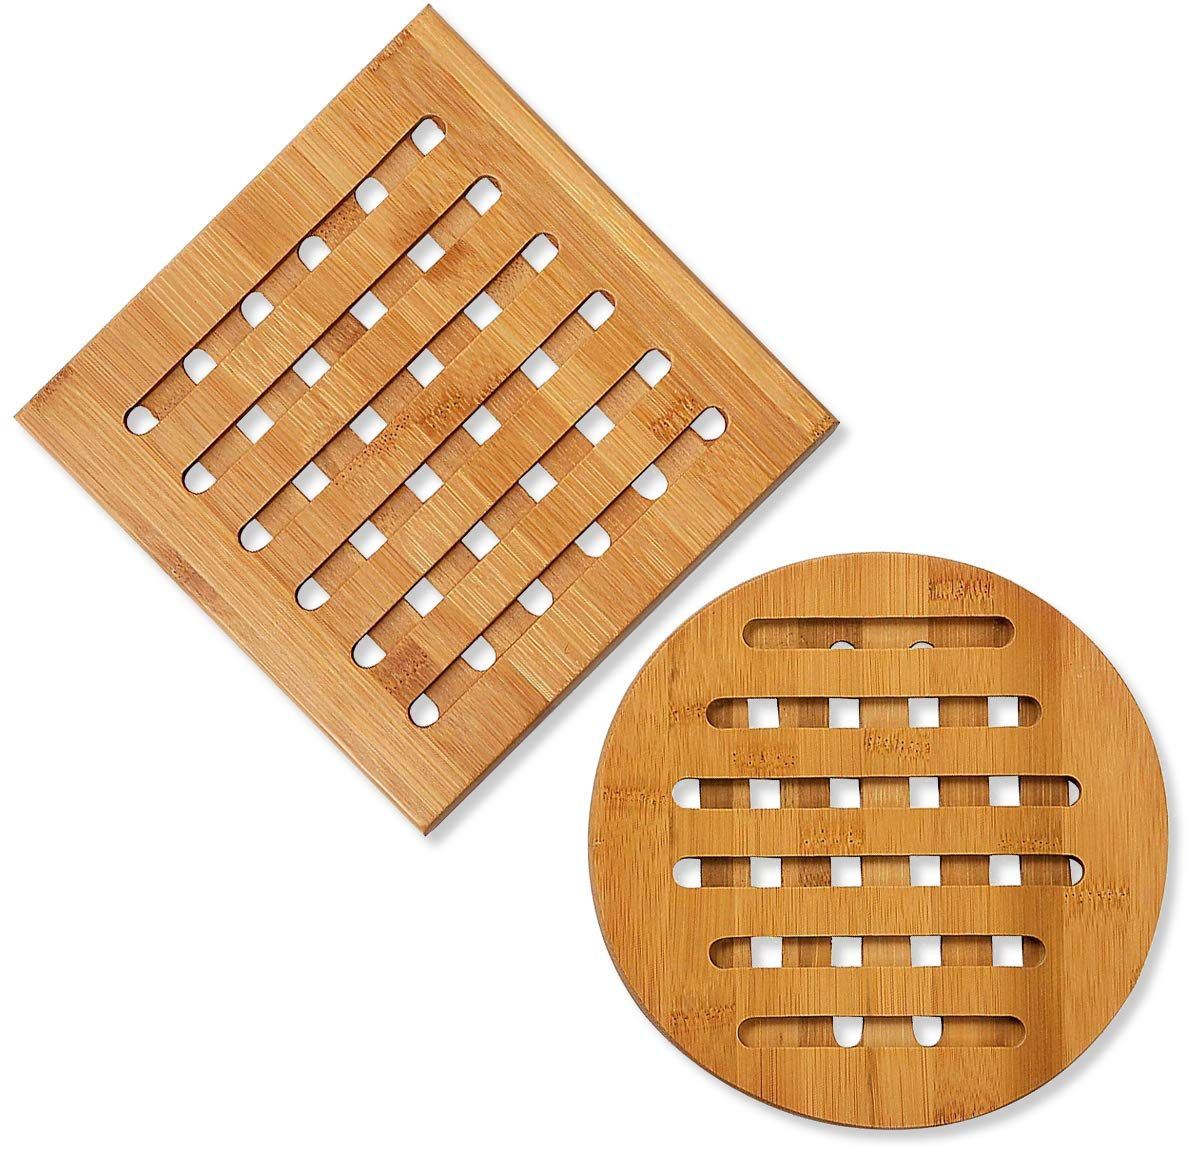 Bamboo Trivet 2pack Wood Trivet Hot Pads Plate Heat Resistant Coaster For Hot Dishes Pots Pans Protection For Dining Ta Wood Trivets Hot Pads Kitchen Hot Pads